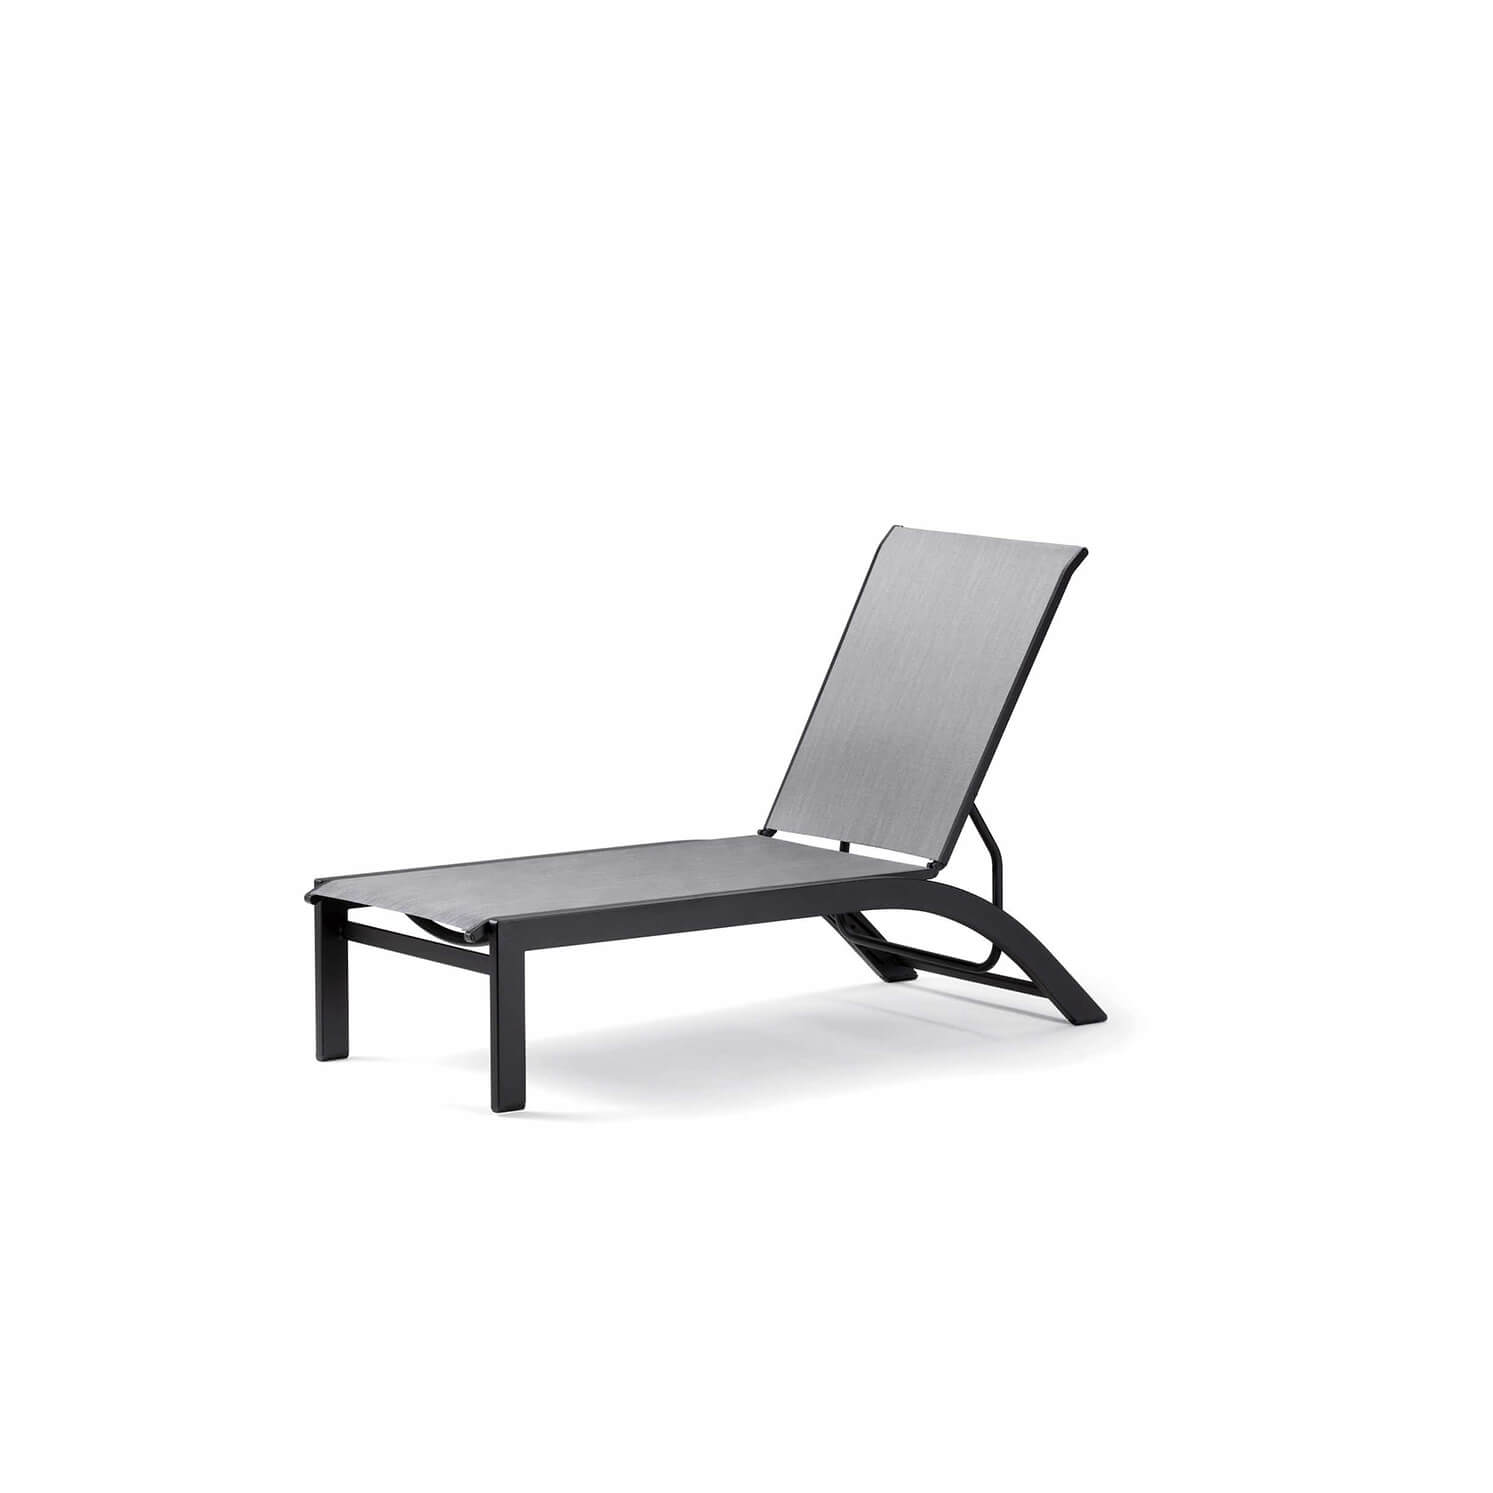 Kendall Lay flat Stacking Armless Chaise